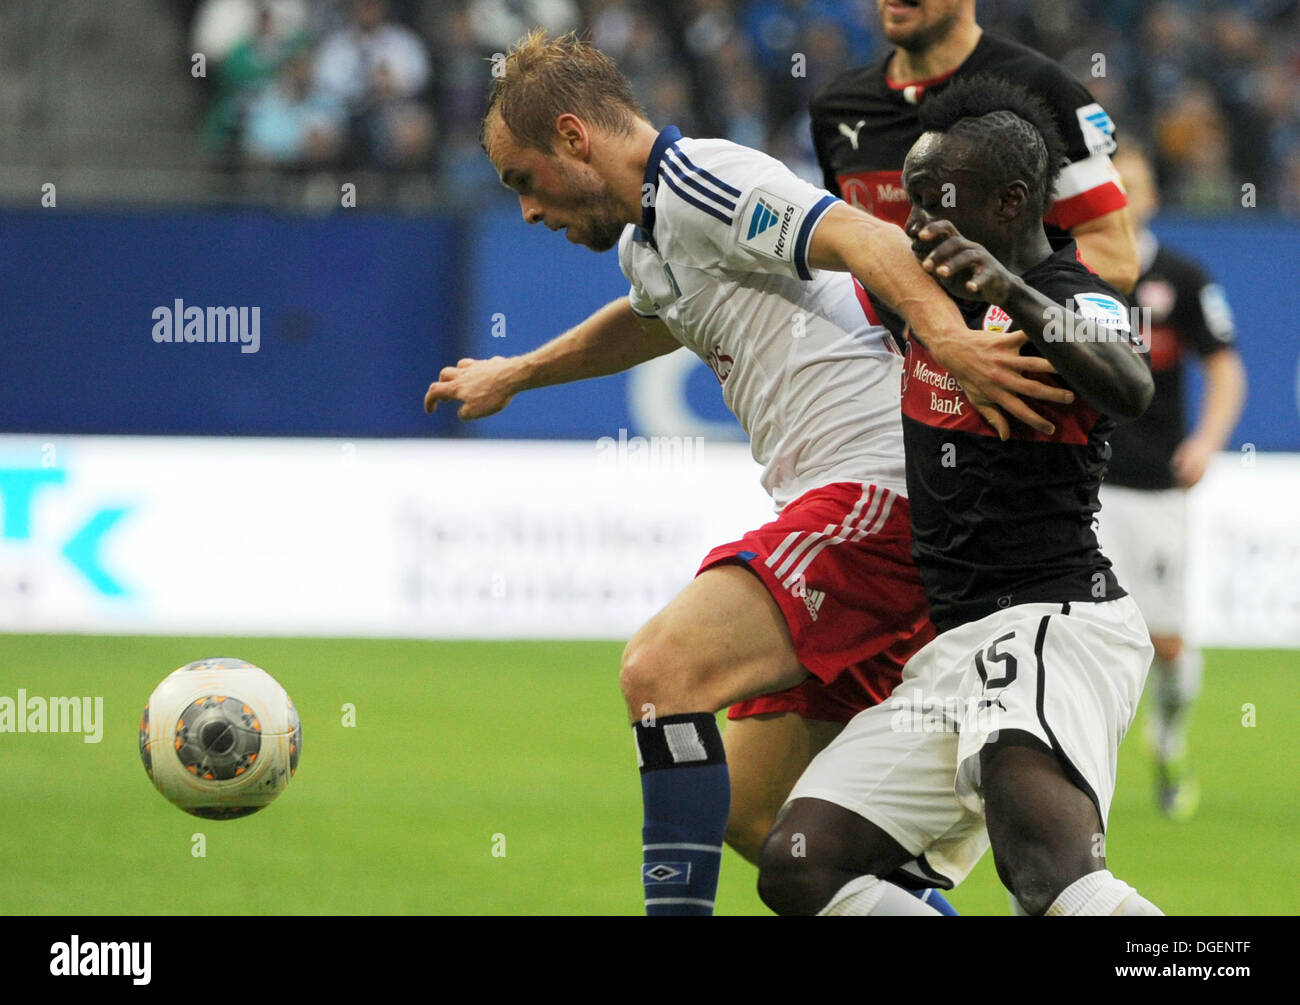 Hamburg, Germany. 20th Oct, 2013. Hamburg's Maximilian Beister (L) vies for the ball with Stuttgart's Arthur Boka (R) next to Stuttgart's Christian Gentner during the German Bundesliga soccer match between Hamburger SV and VfB Stuttgart at the Imtech Arena in Hamburg, Germany, 20 October 2013. Photo: ANGELIKA WARMUTH (ATTENTION: Due to the accreditation guidelines, the DFL only permits the publication and utilisation of up to 15 pictures per match on the internet and in online media during the match.)/dpa/Alamy Live News - Stock Image